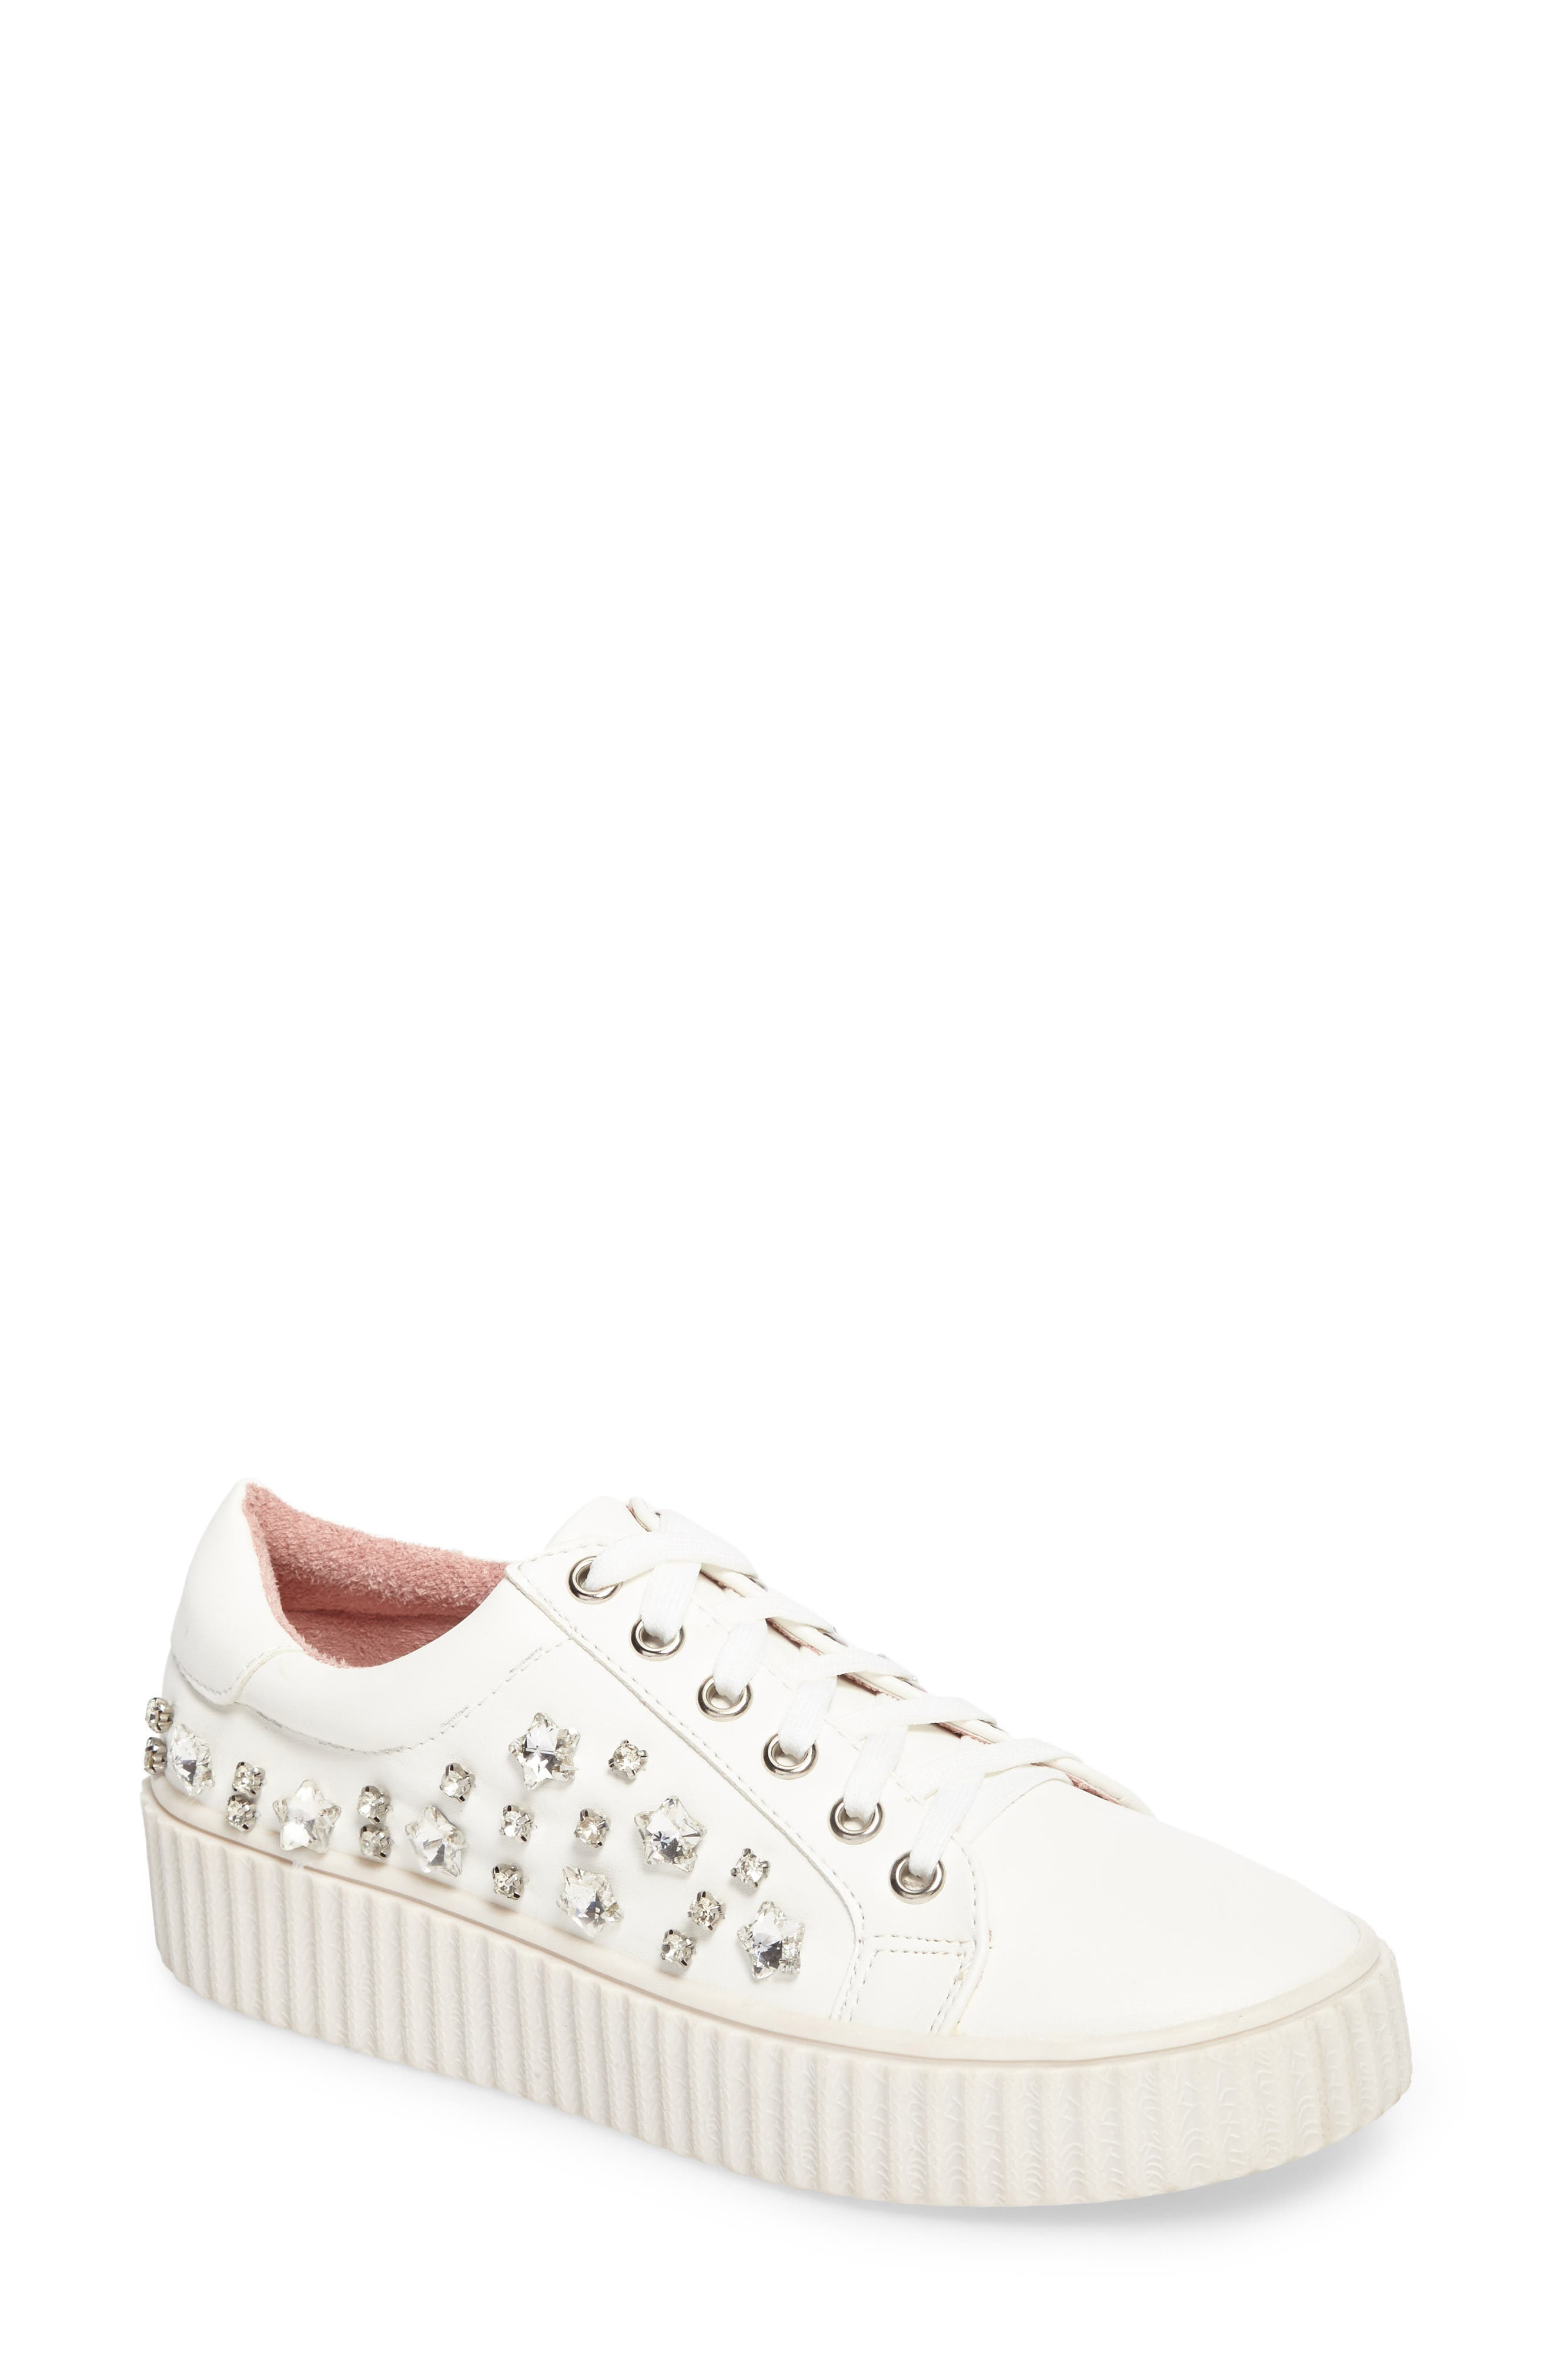 Pam Embellished Platform Sneaker,                         Main,                         color, WHITE